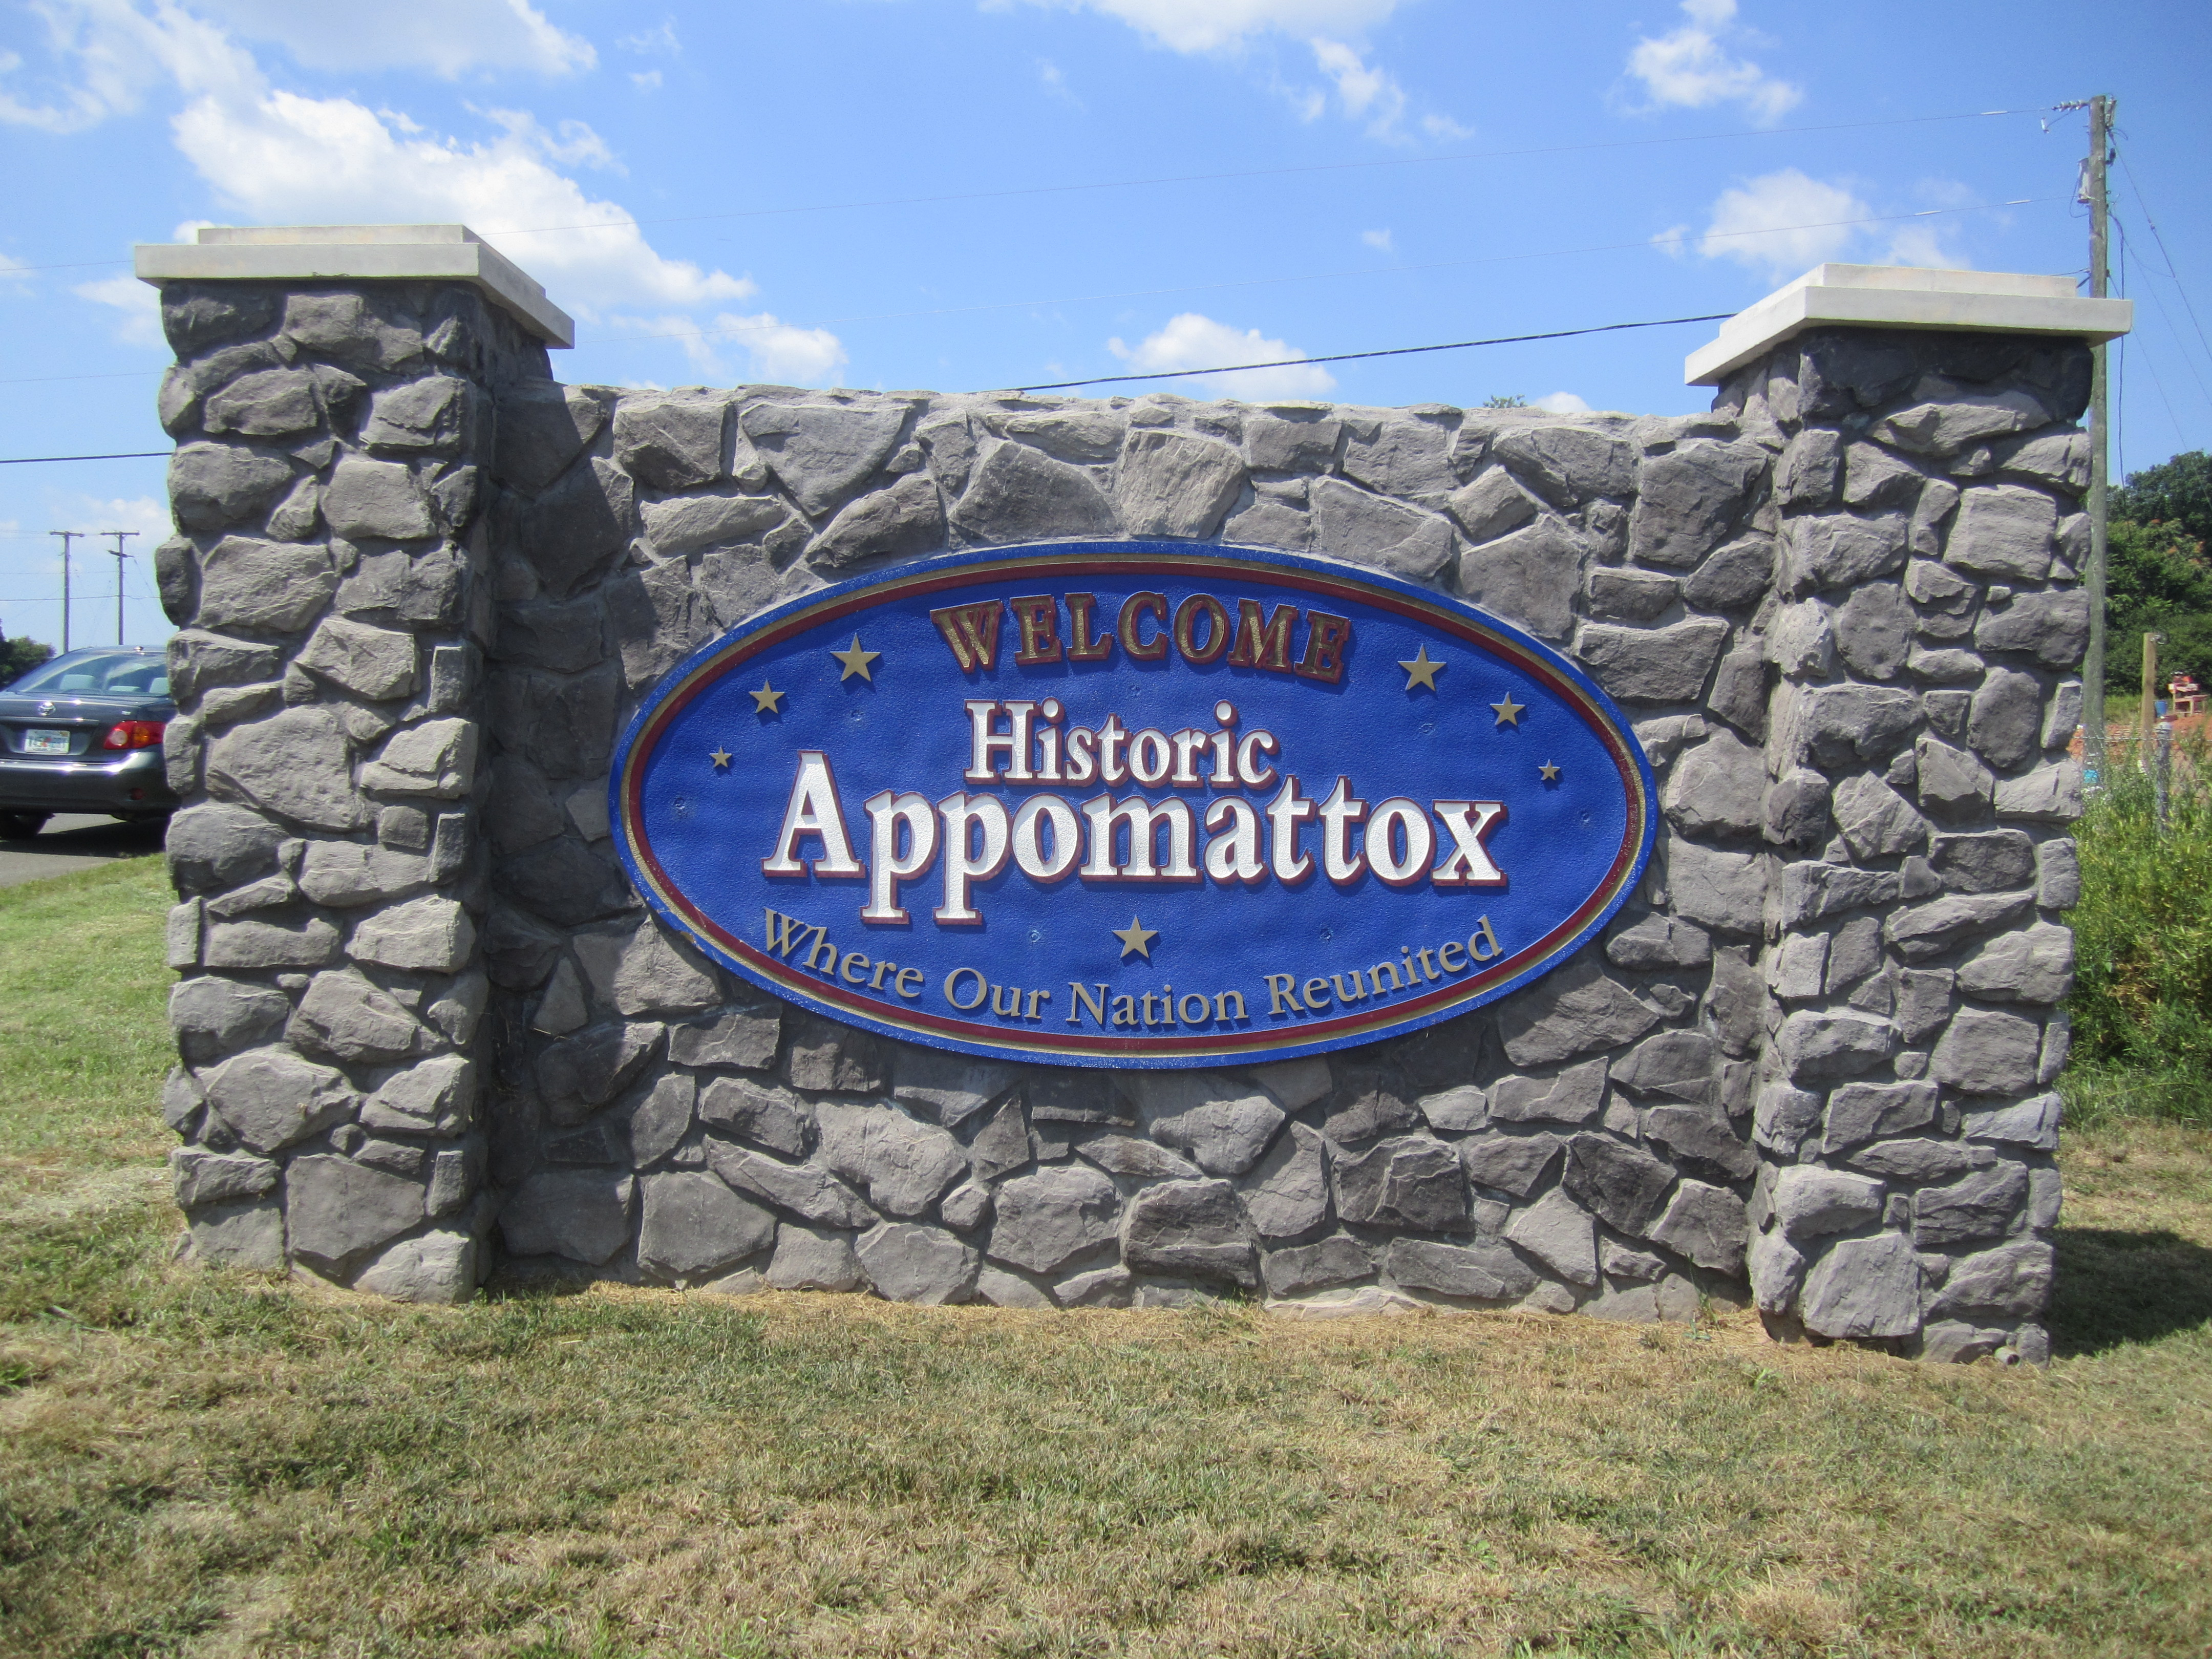 appomattox guys The most trusted junk removal services in appomattox are on porch see costs, licenses and reviews from friends and neighbors get the best info on local junk removal services.